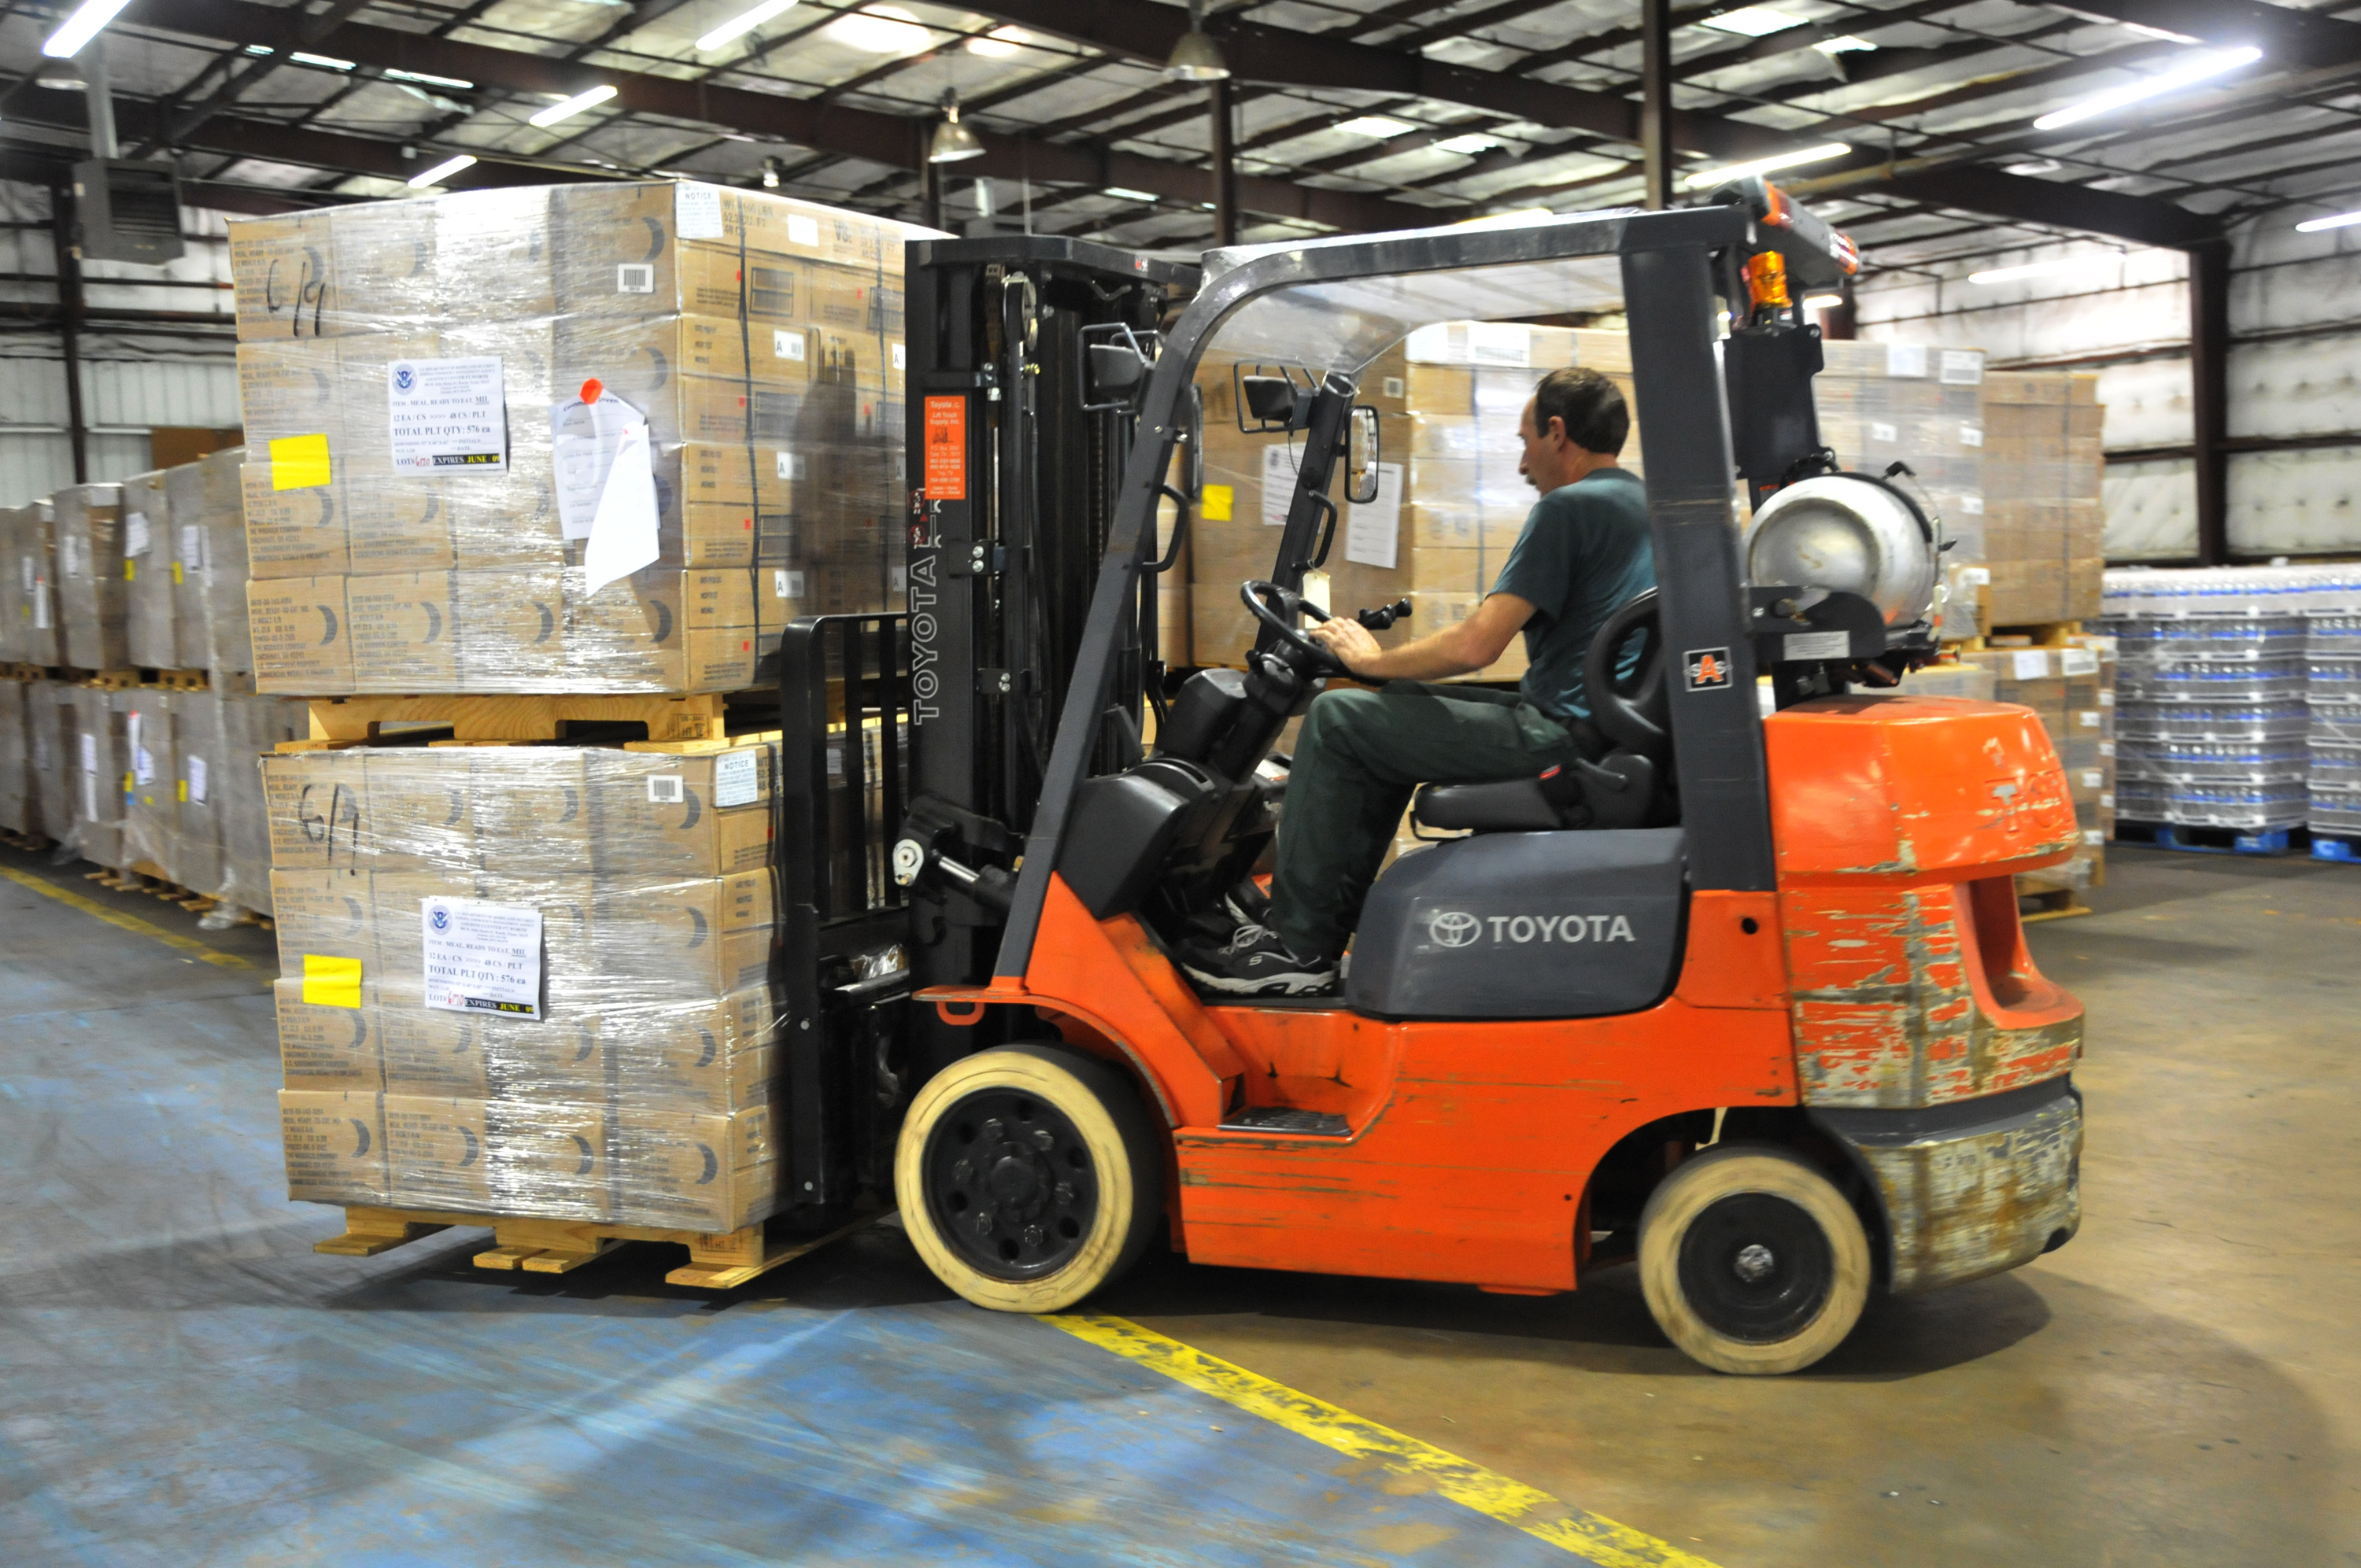 FEMA - 37931 - Meals Ready to Eat being moved by fork lift in a Texas warehouse.jpg